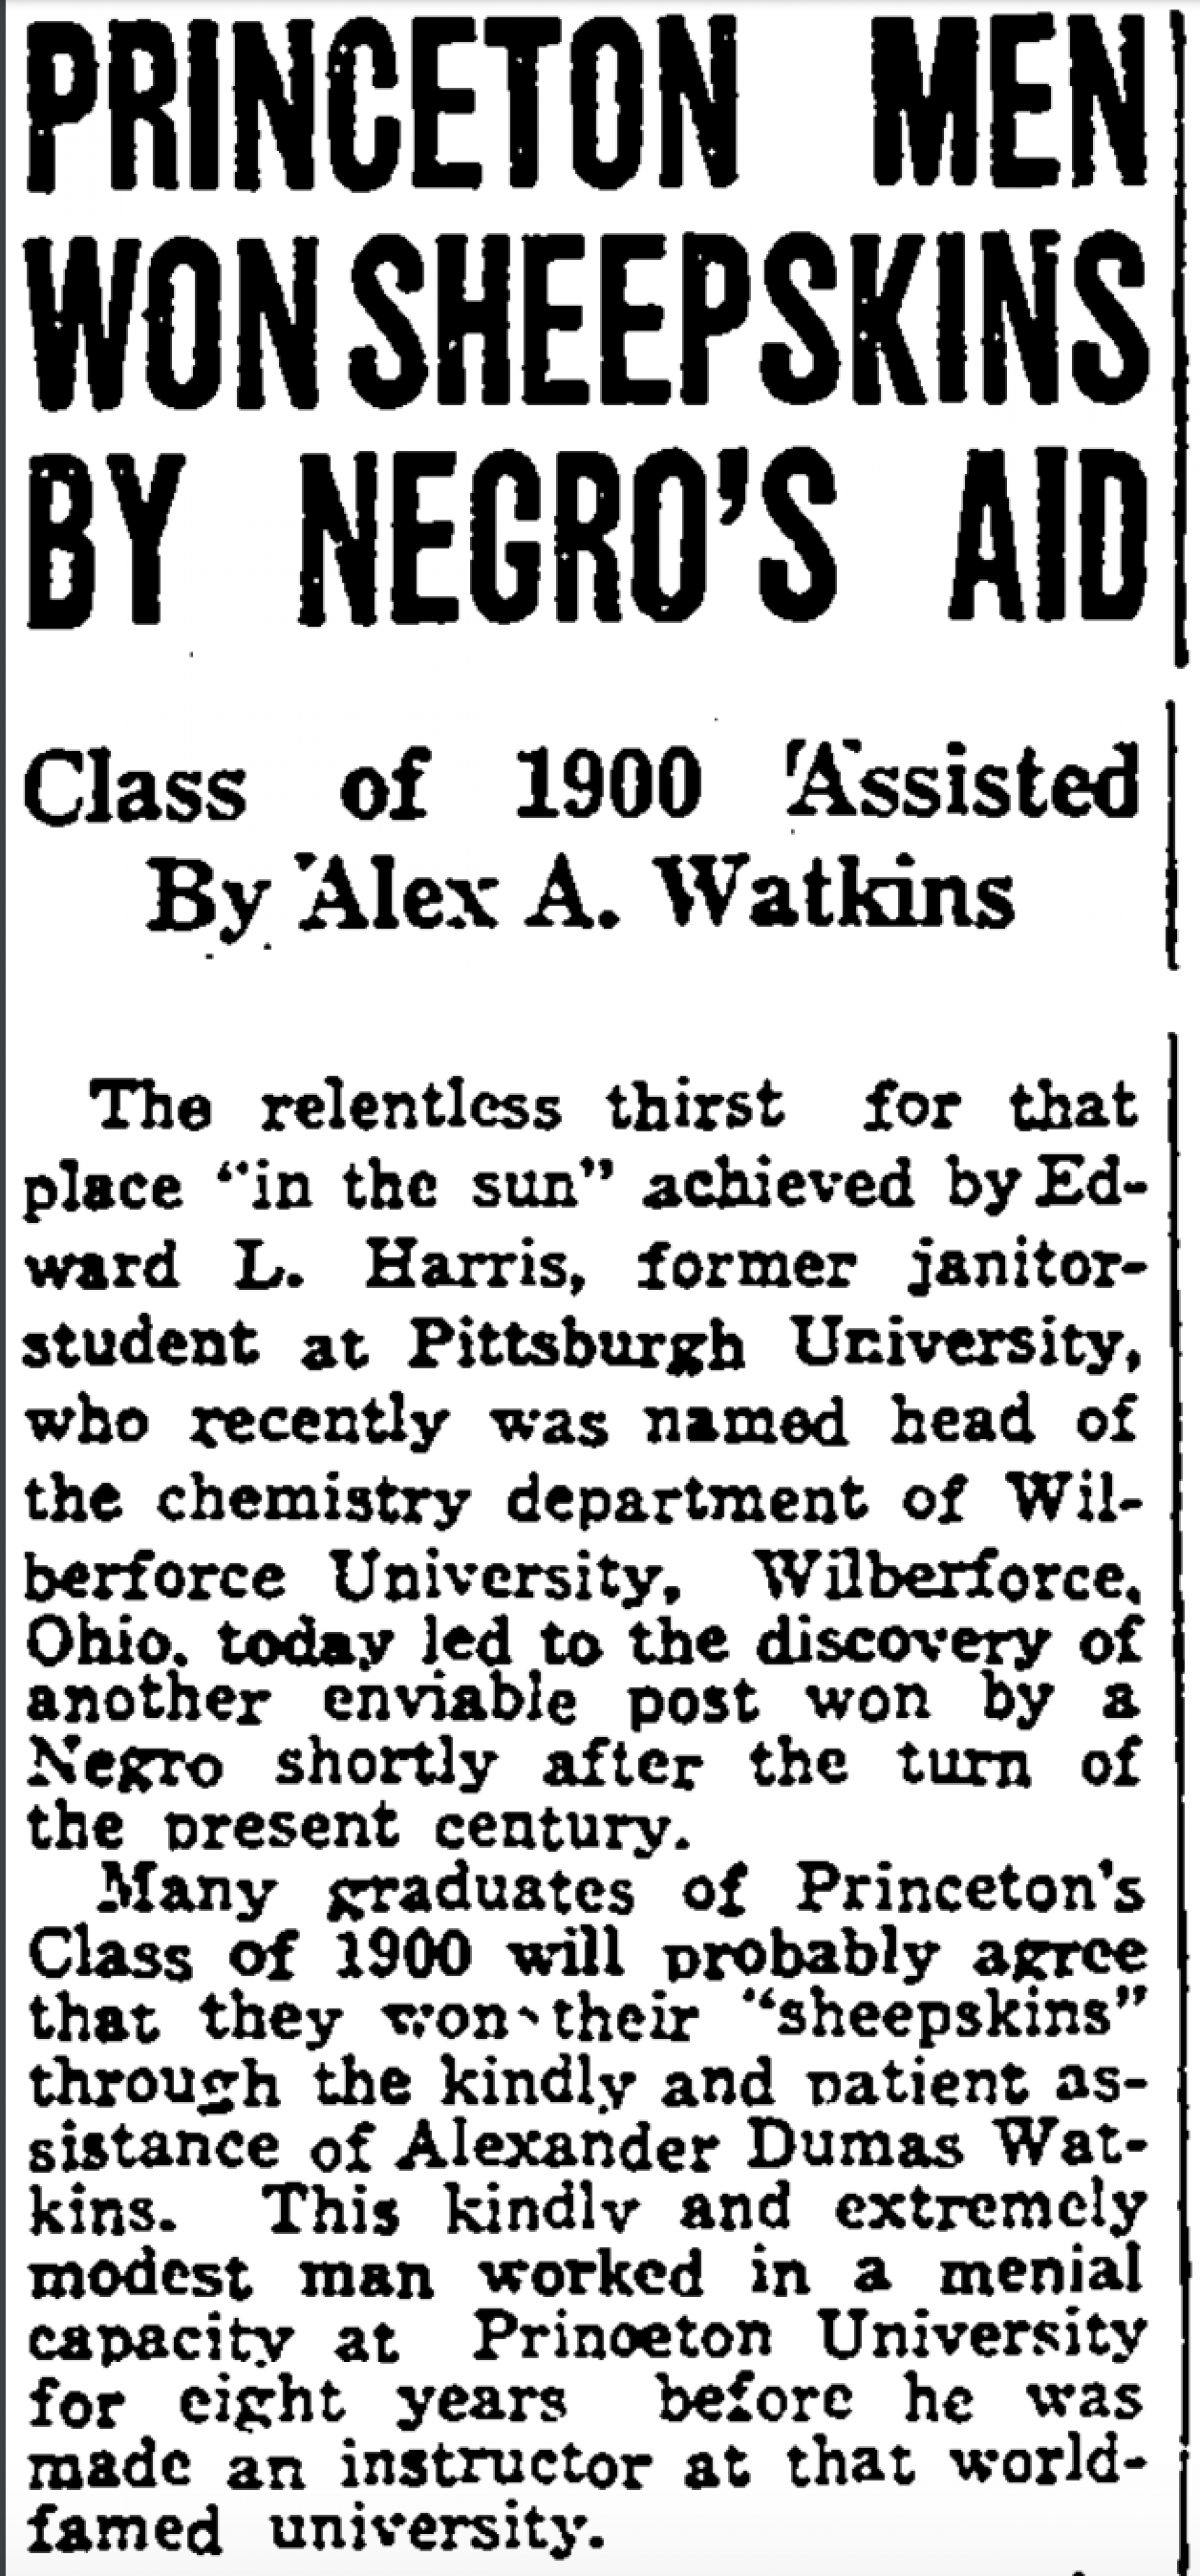 Watkins 1938 Amsterdam News Article Thumbnail